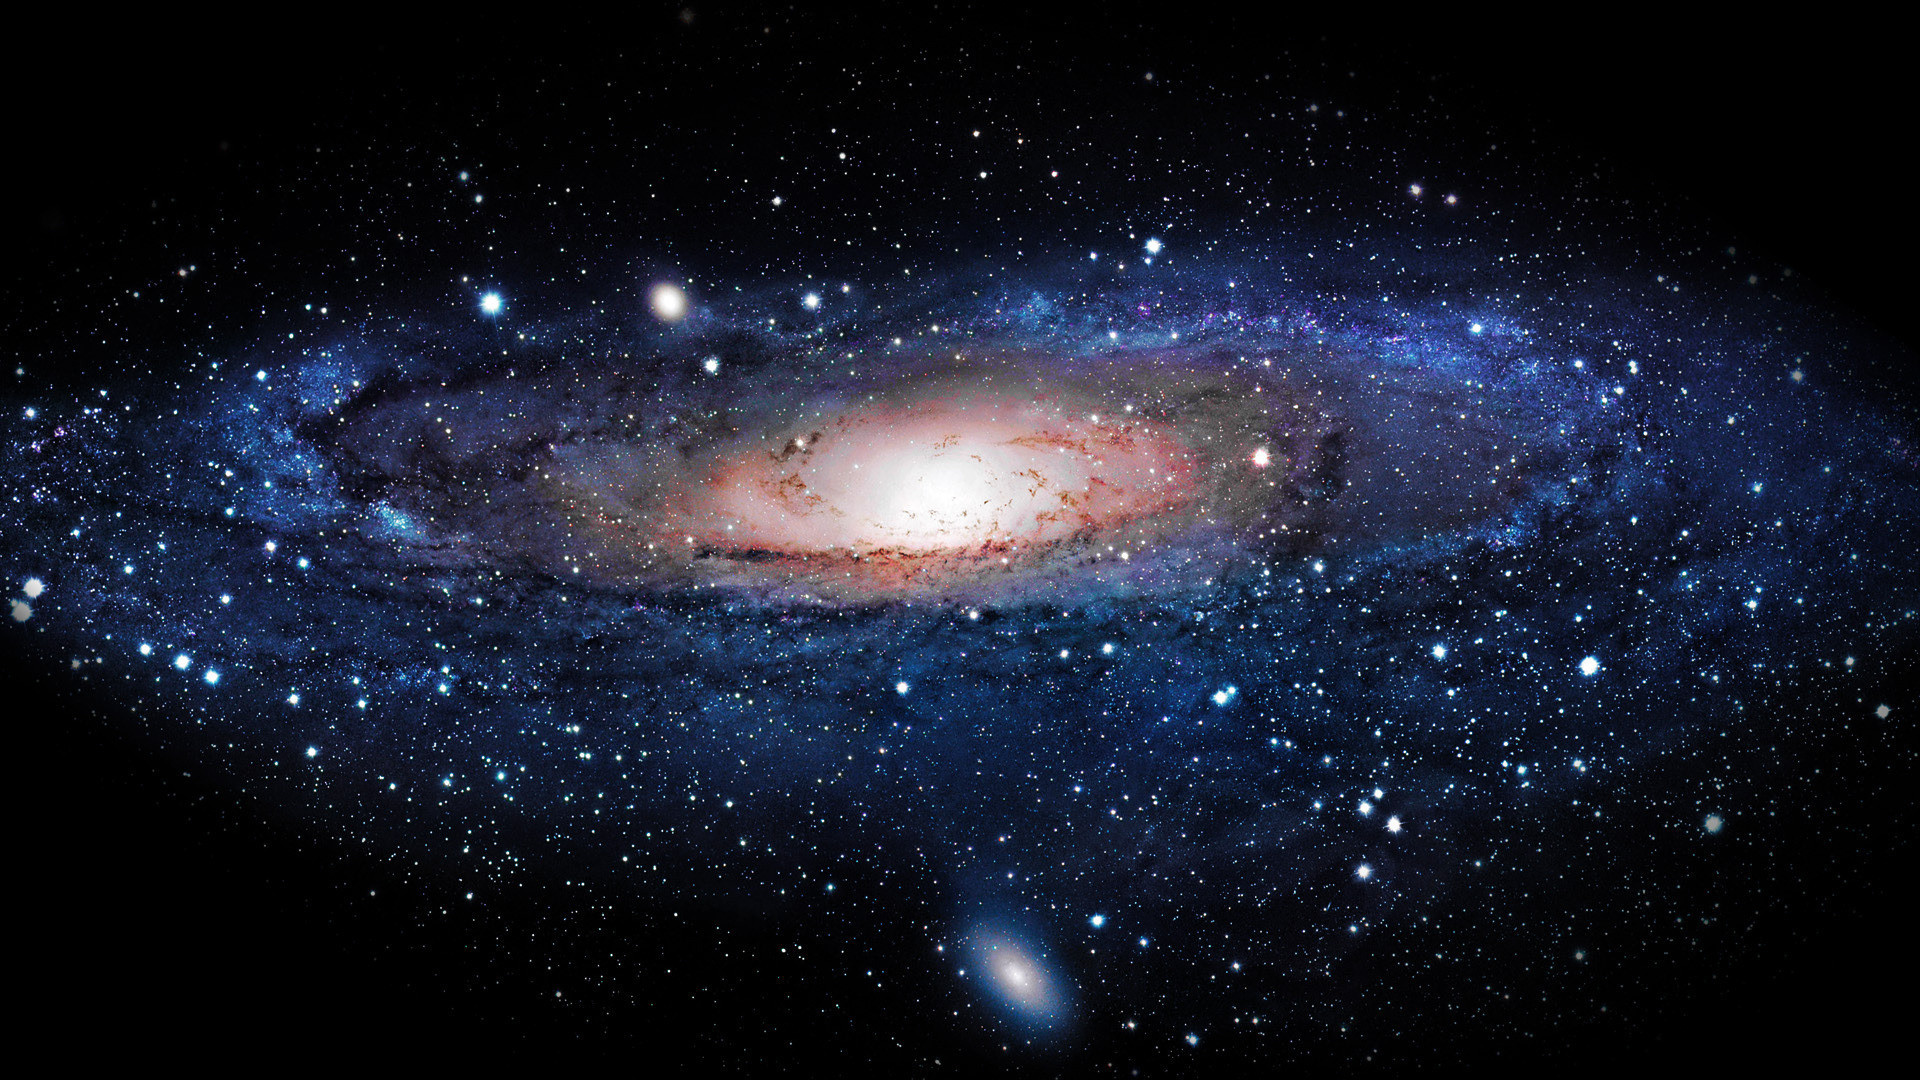 … universe backgrounds (11) …